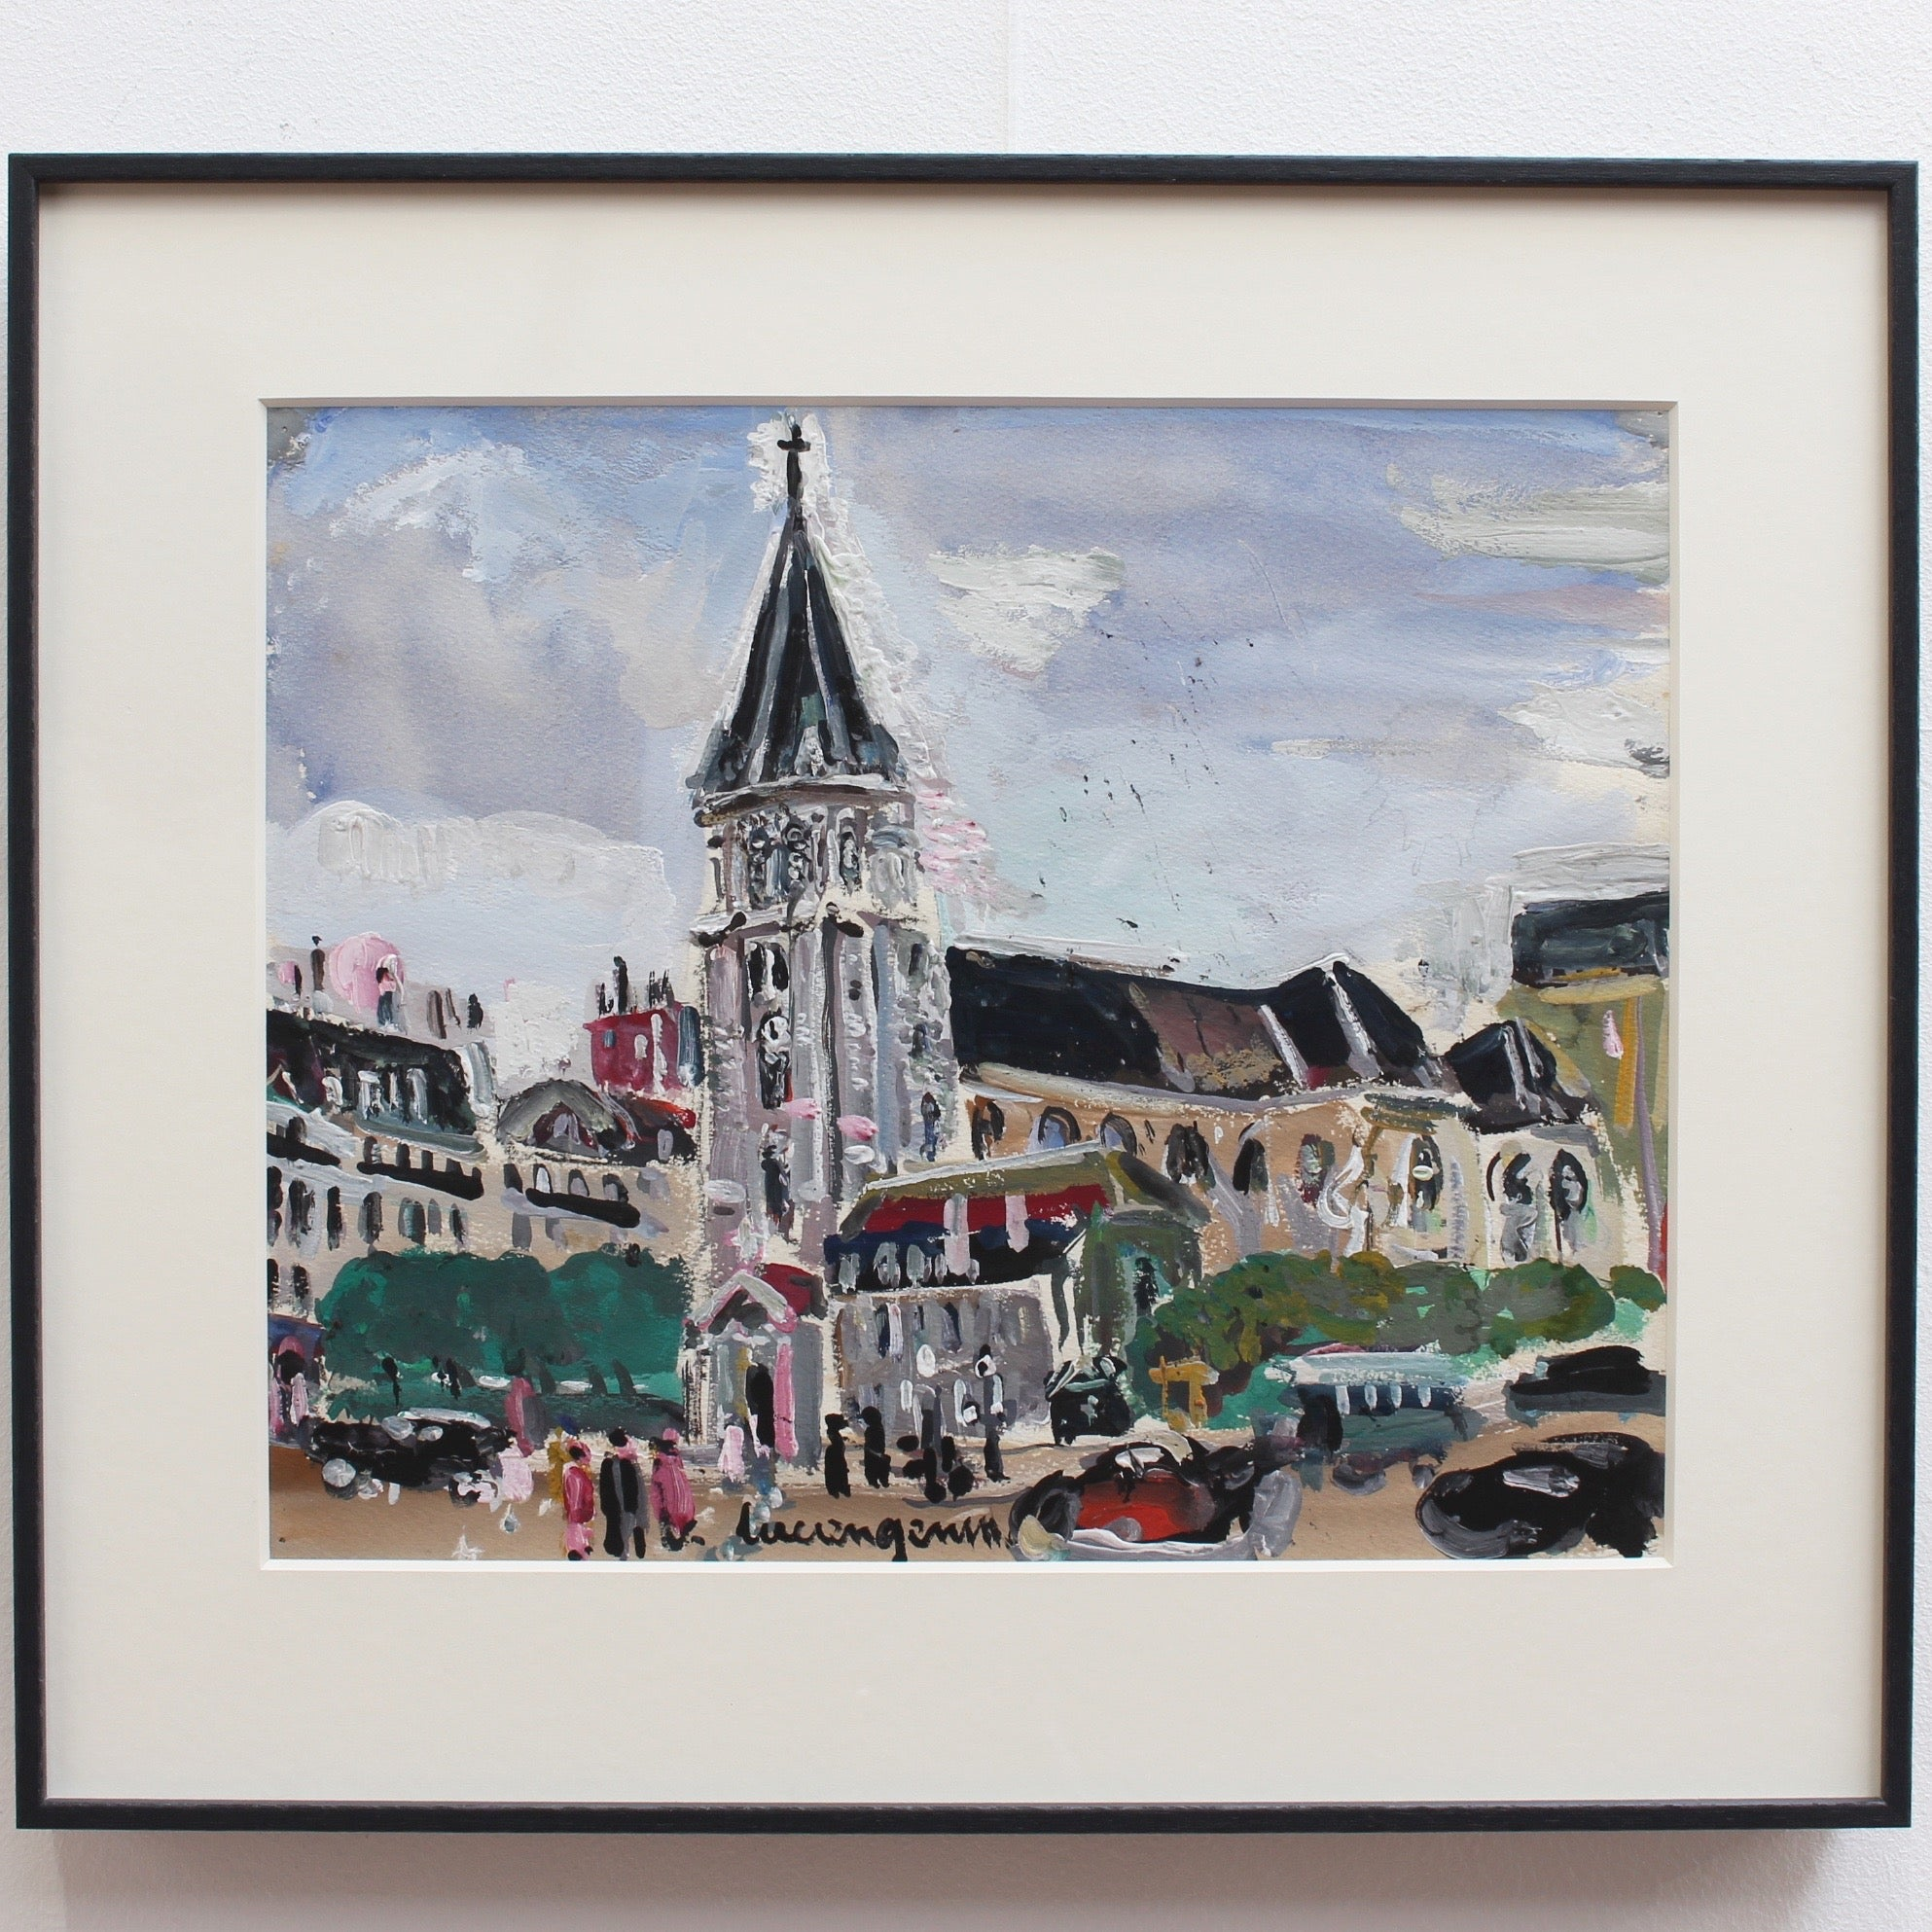 'View of Saint Germain des Pres Church' by Lucien Génin (circa 1930s)